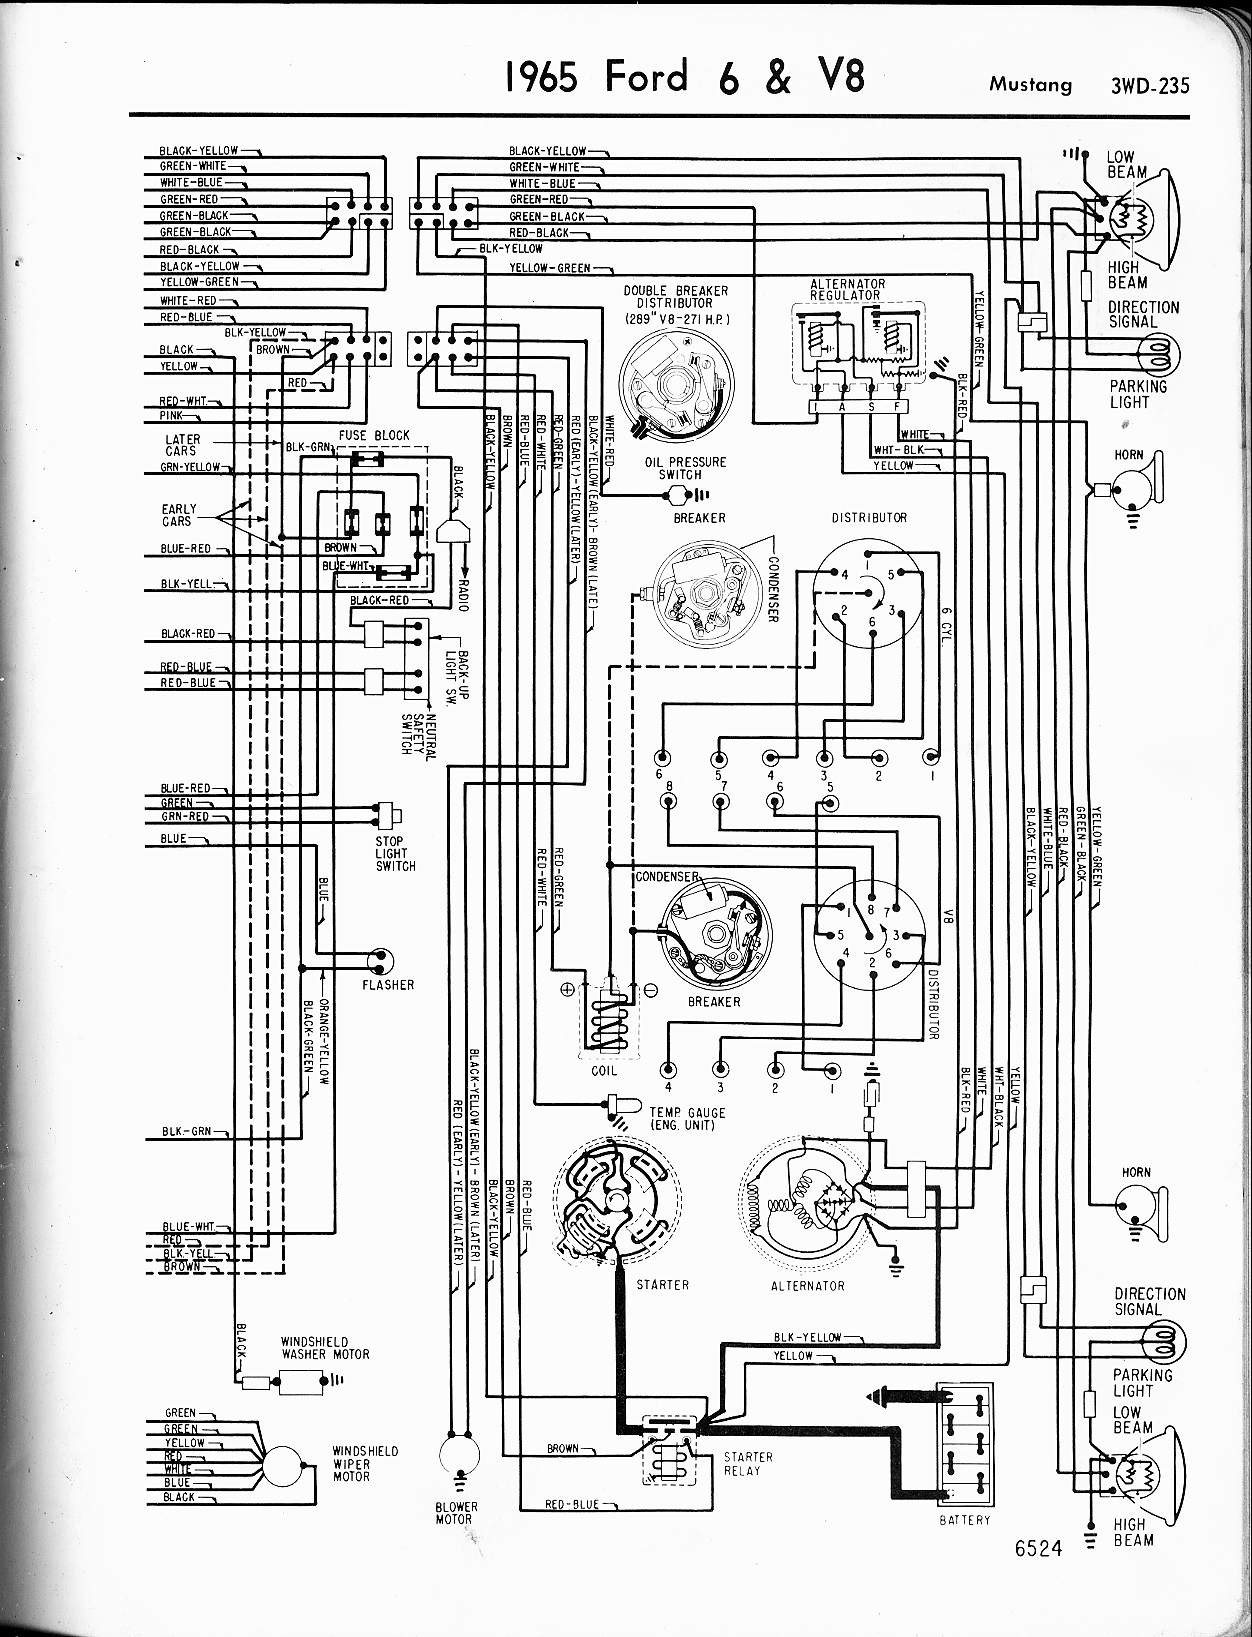 1968 Mustang Turn Signal Switch Diagram Wiring Schematic Starting Blinker Rh Detoxicrecenze Com